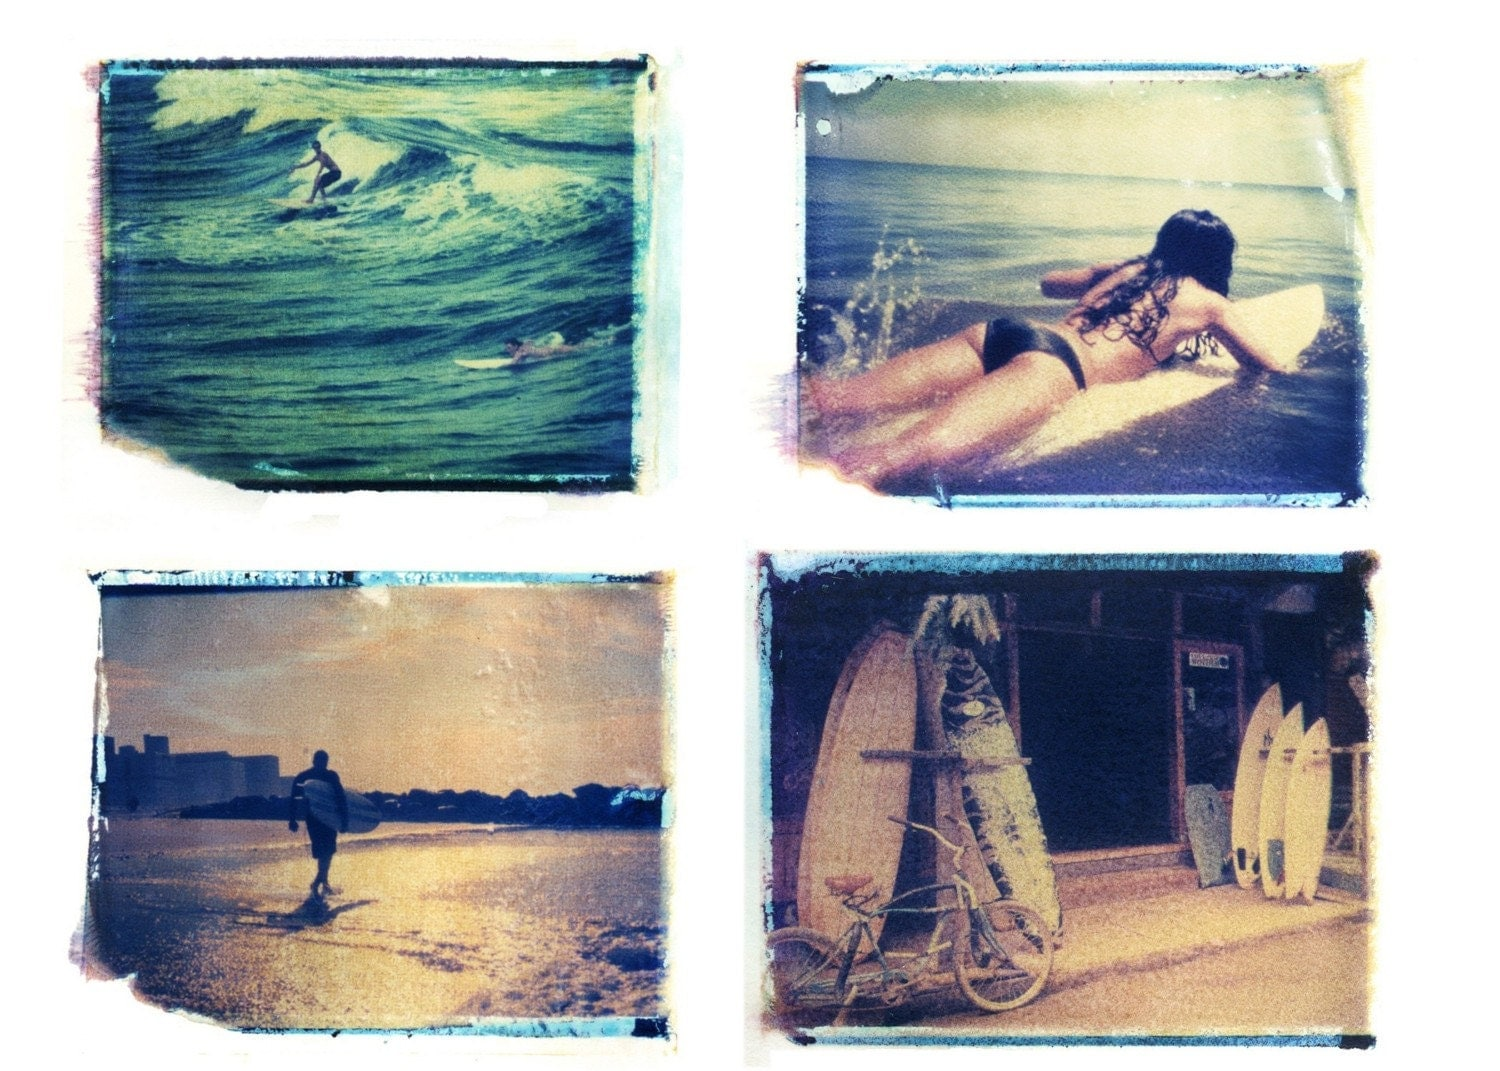 set of four -4x5 surfing polaroid transfers-individually matted in 8x10-signed